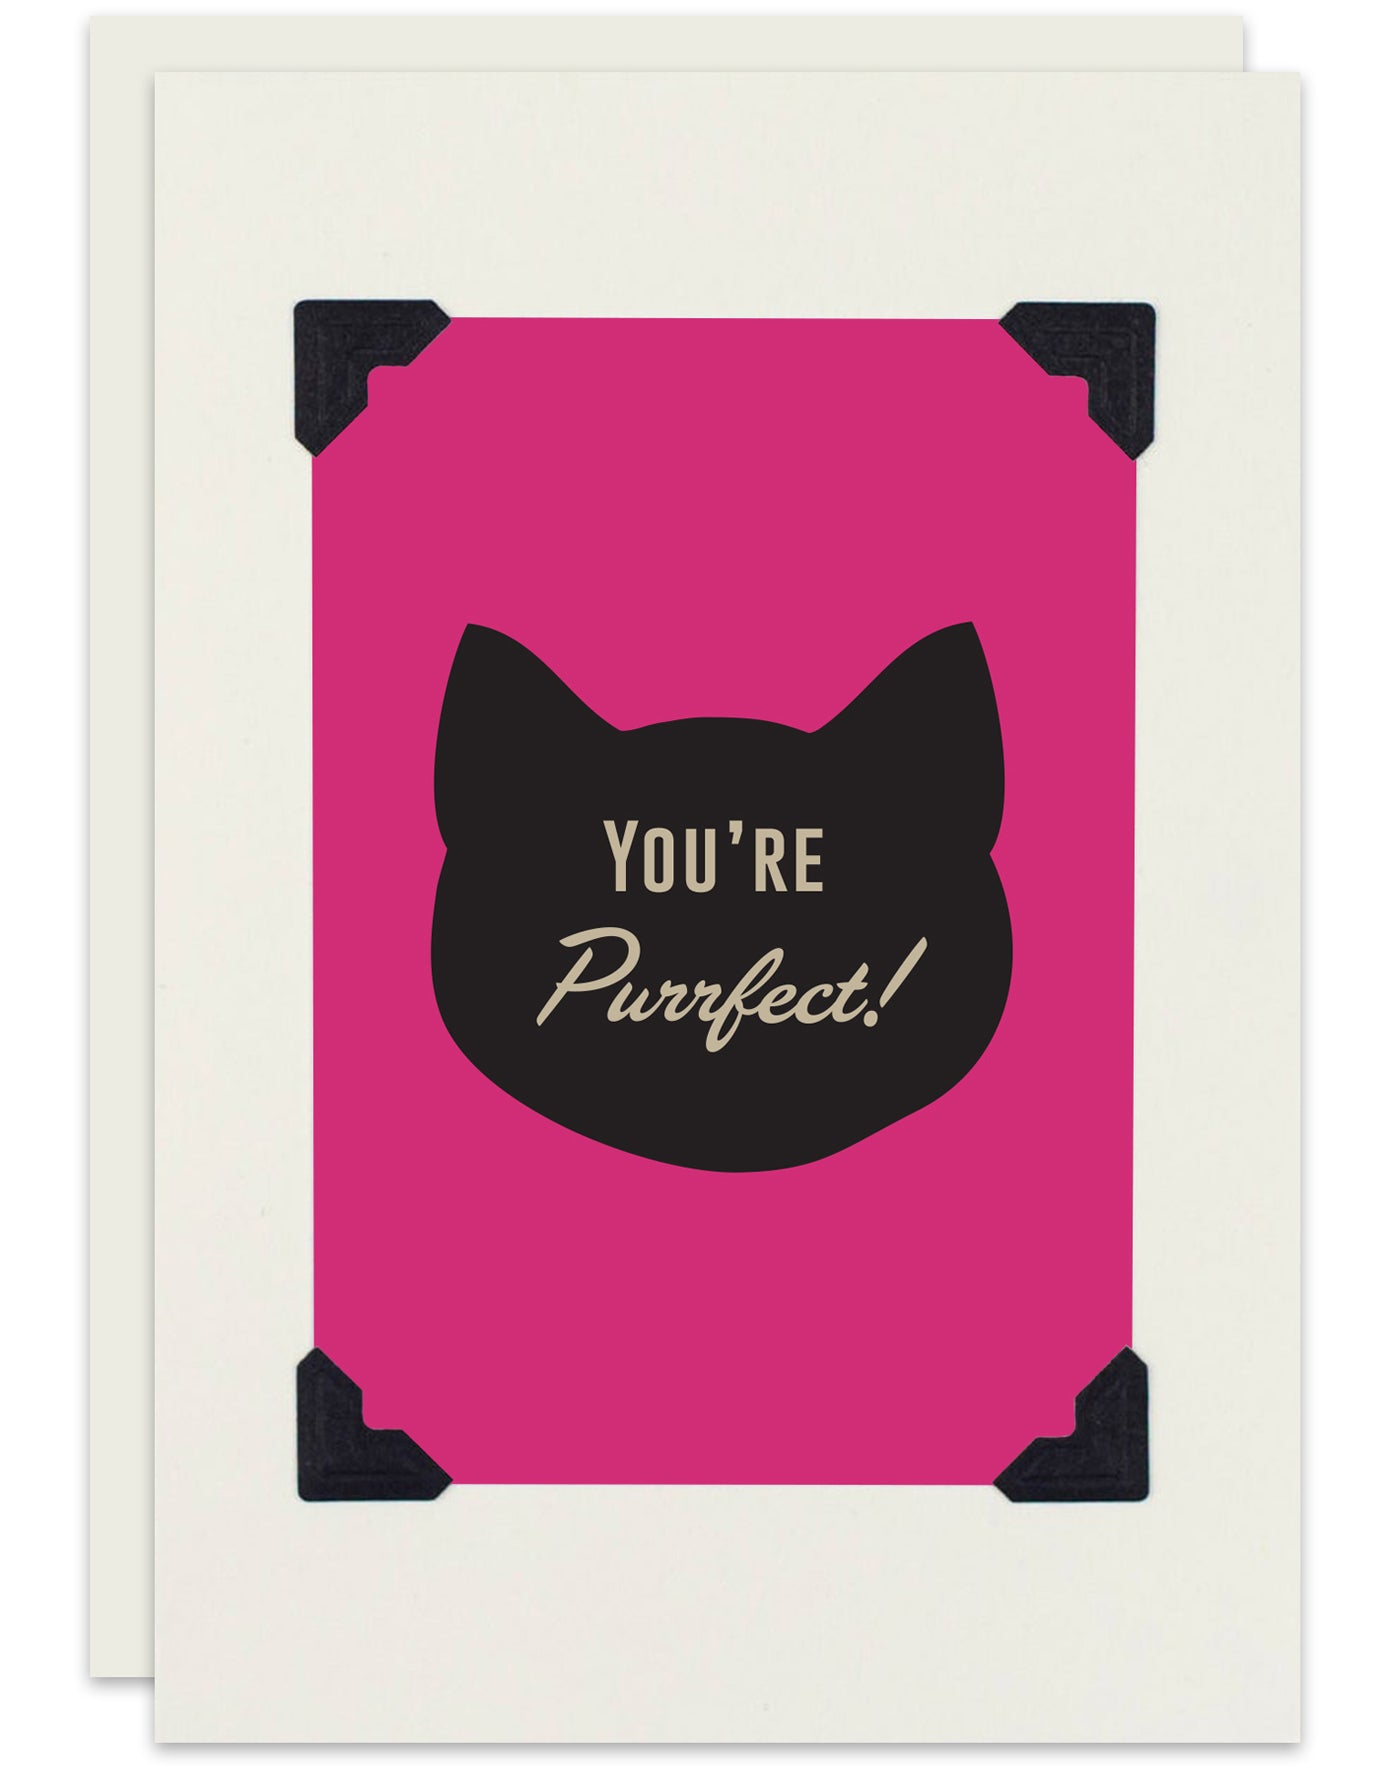 You're Purrfect